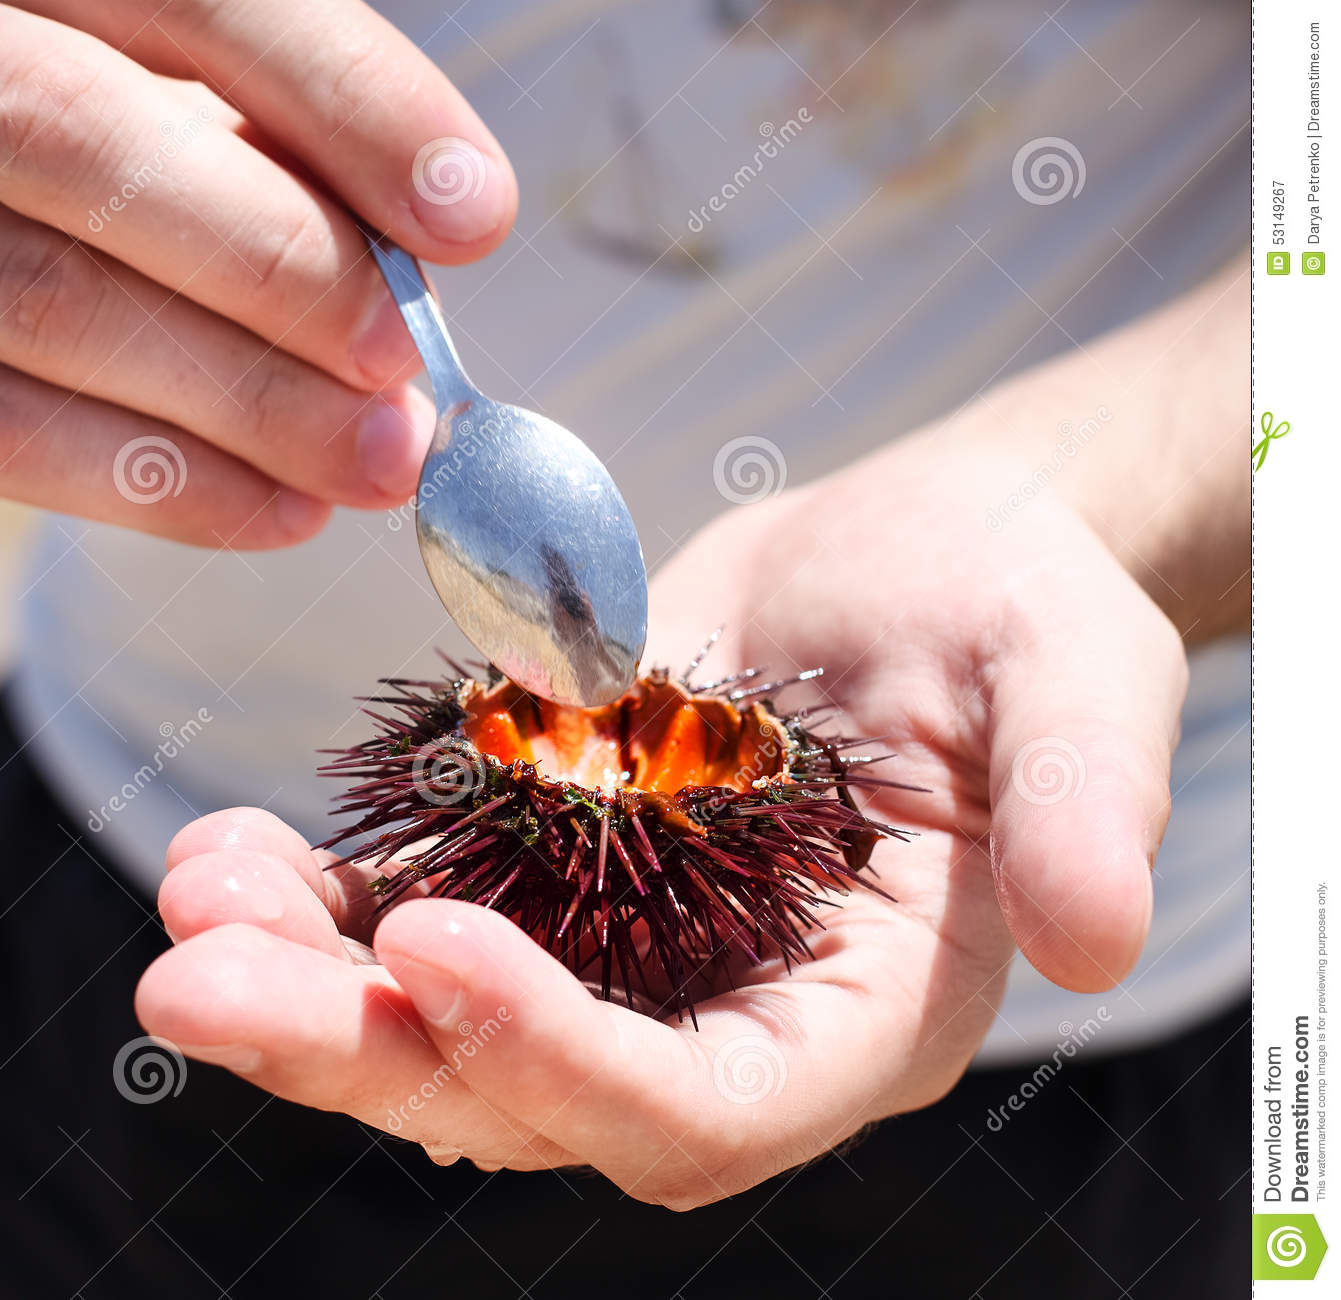 Man Holding A Sea Urchin For Eating It On The Beach Stock Photo ...